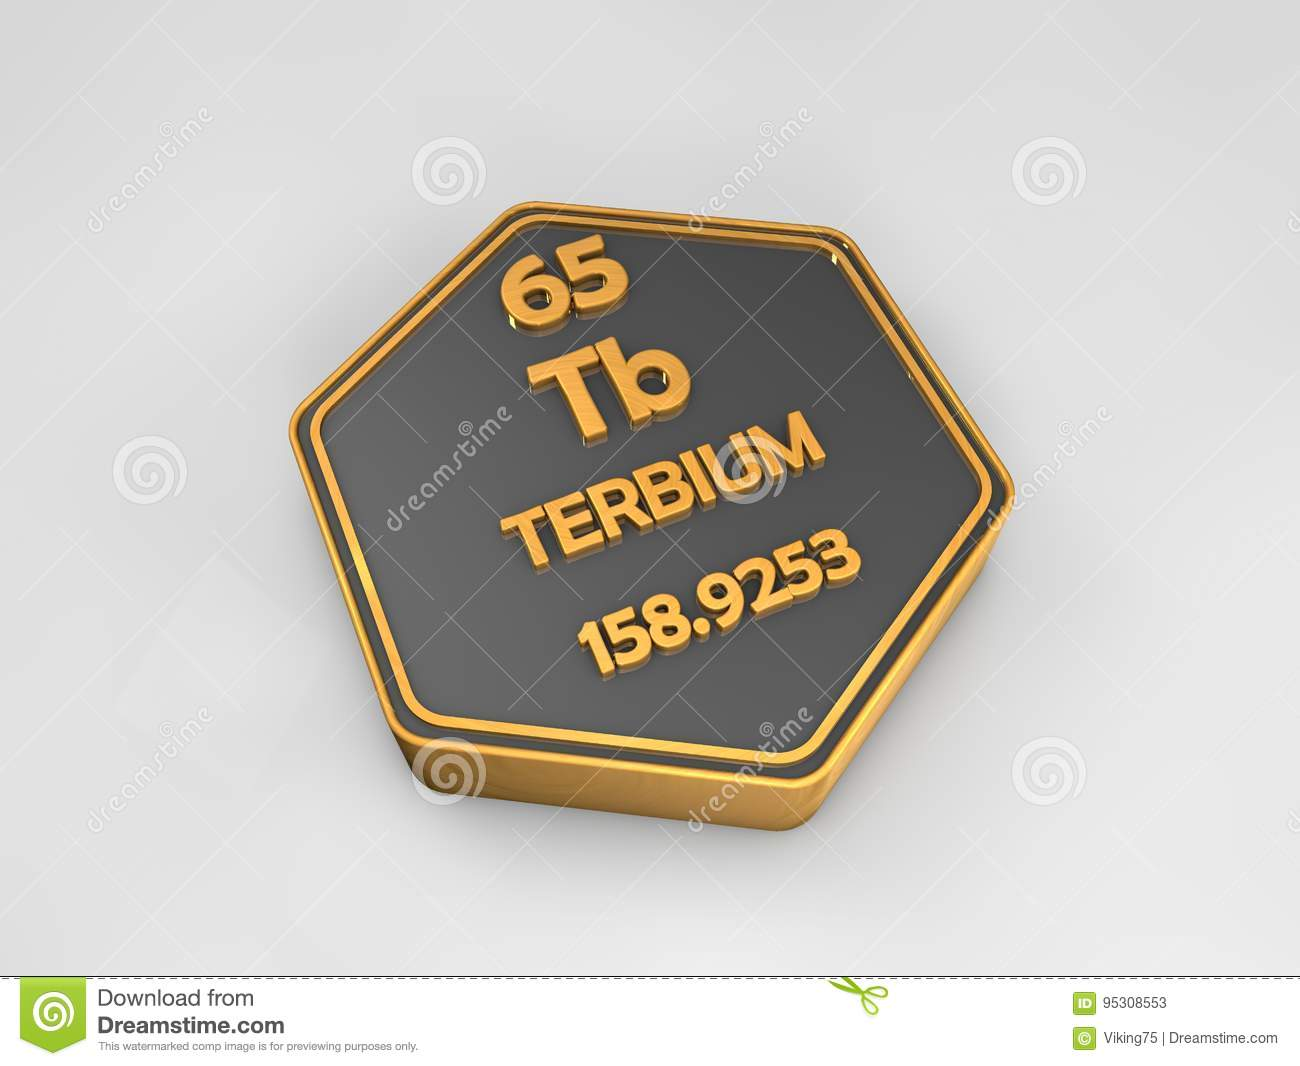 Tb periodic table image collections periodic table images terbium tb chemical element periodic table hexagonal shape terbium tb chemical element periodic table hexagonal shape gamestrikefo Image collections